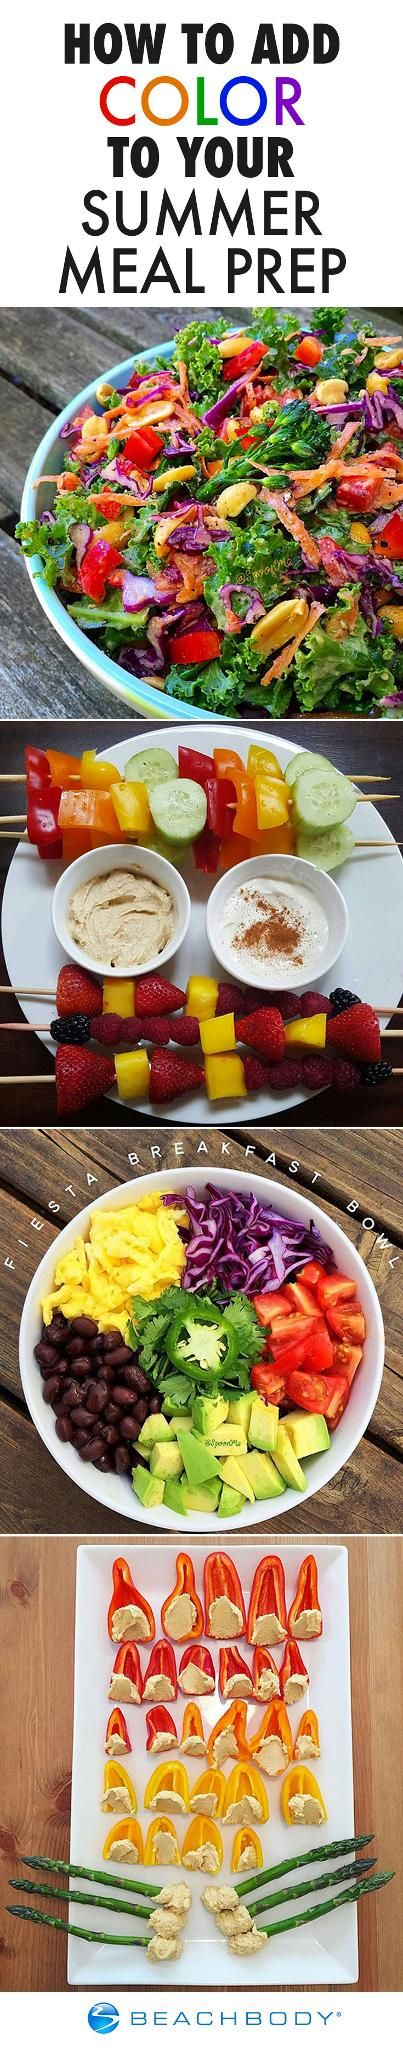 Food is more fun in color! Get inspired to brighten up your summer meals with these beautiful examples. // meal prep // meal prep ideas // summer food // nutrition // 21 day fix // healthy eating // meal planning // Beachbody // BeachbodyBlog.com